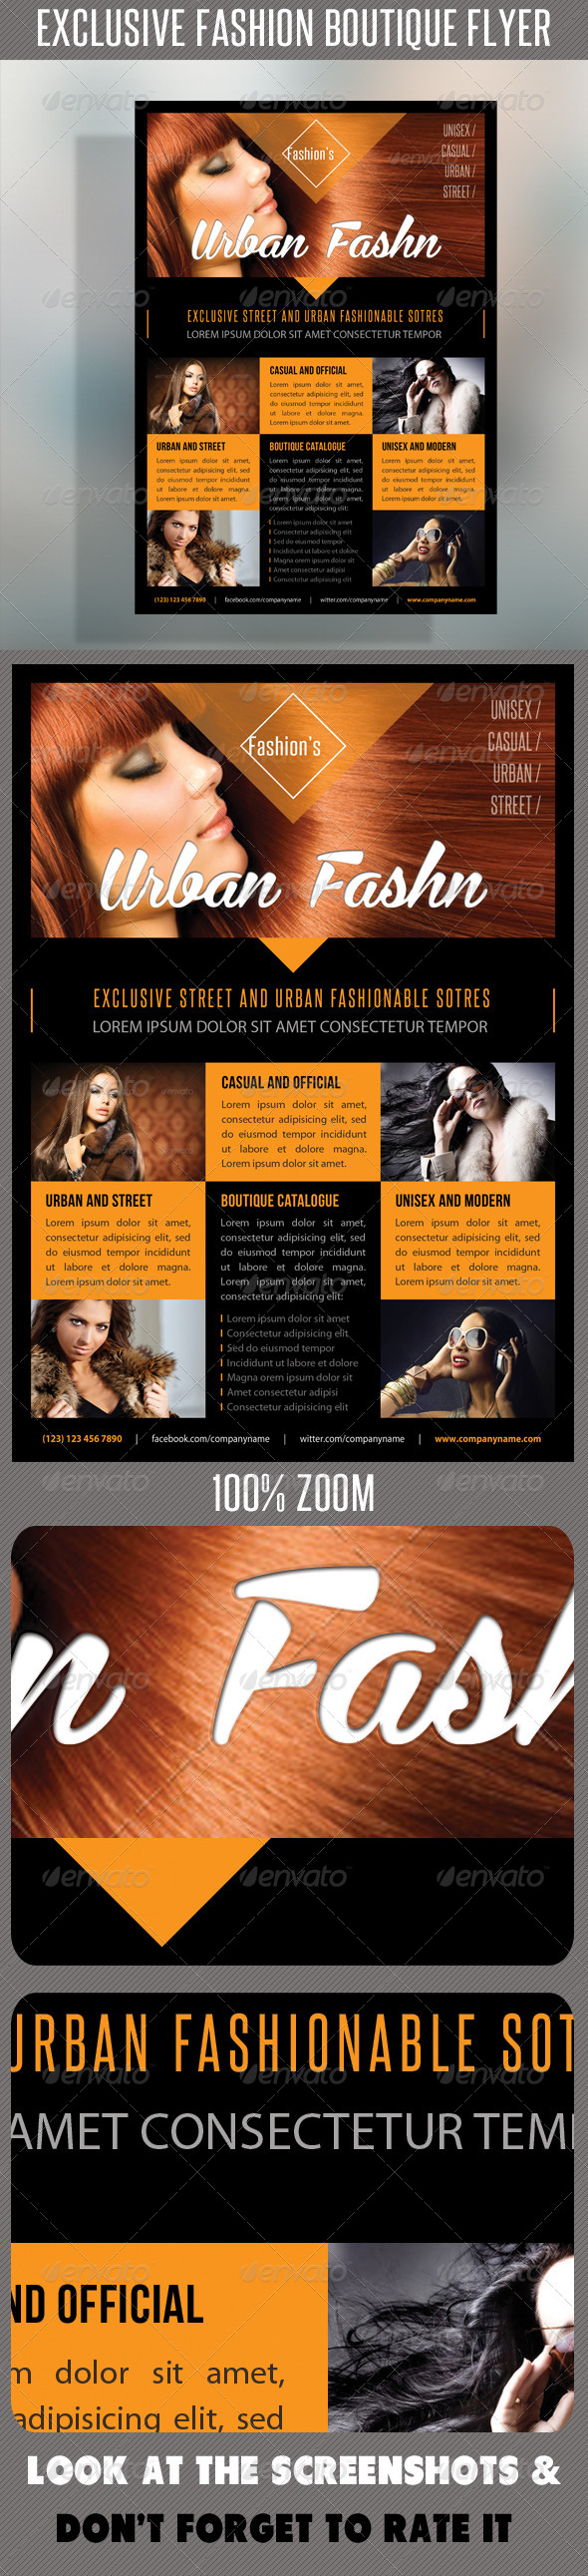 Fashion Product Flyer 48 - Flyers Print Templates